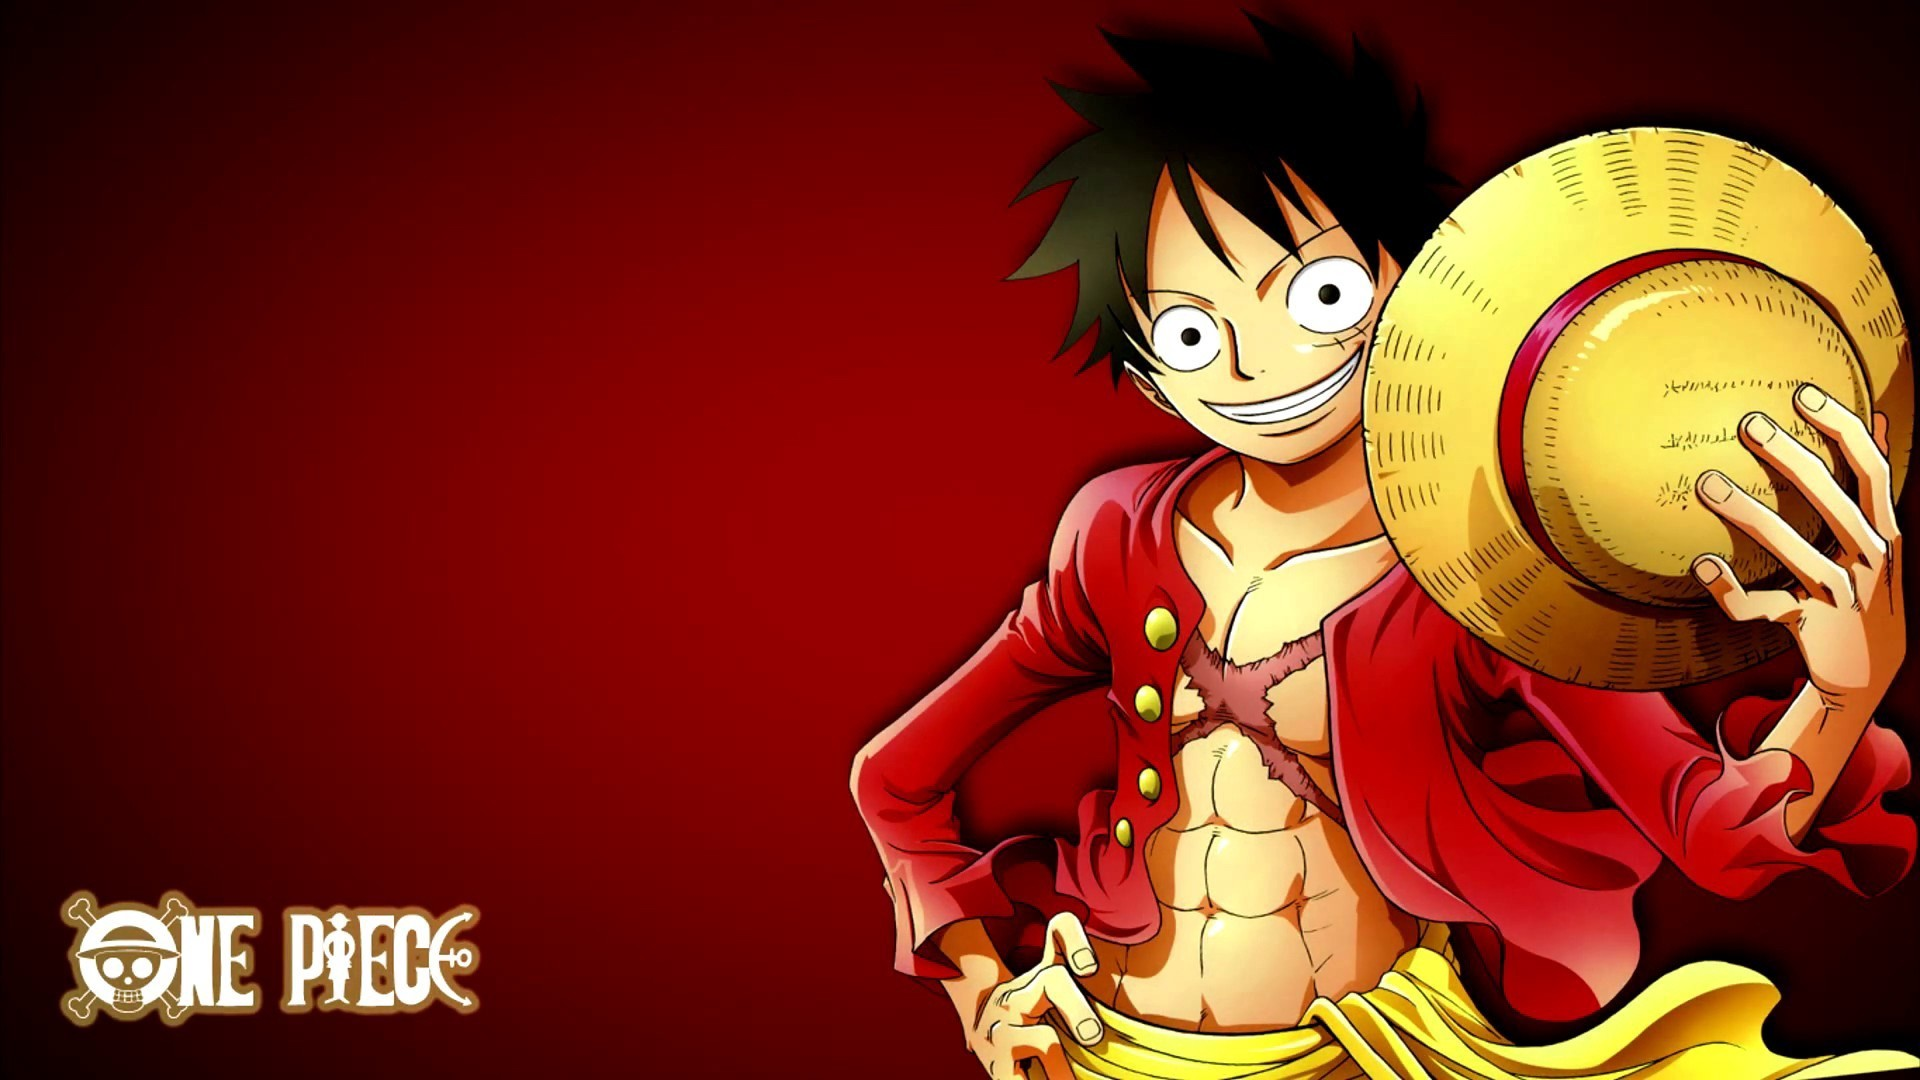 One Piece Crew Wallpapers 66 Background Pictures